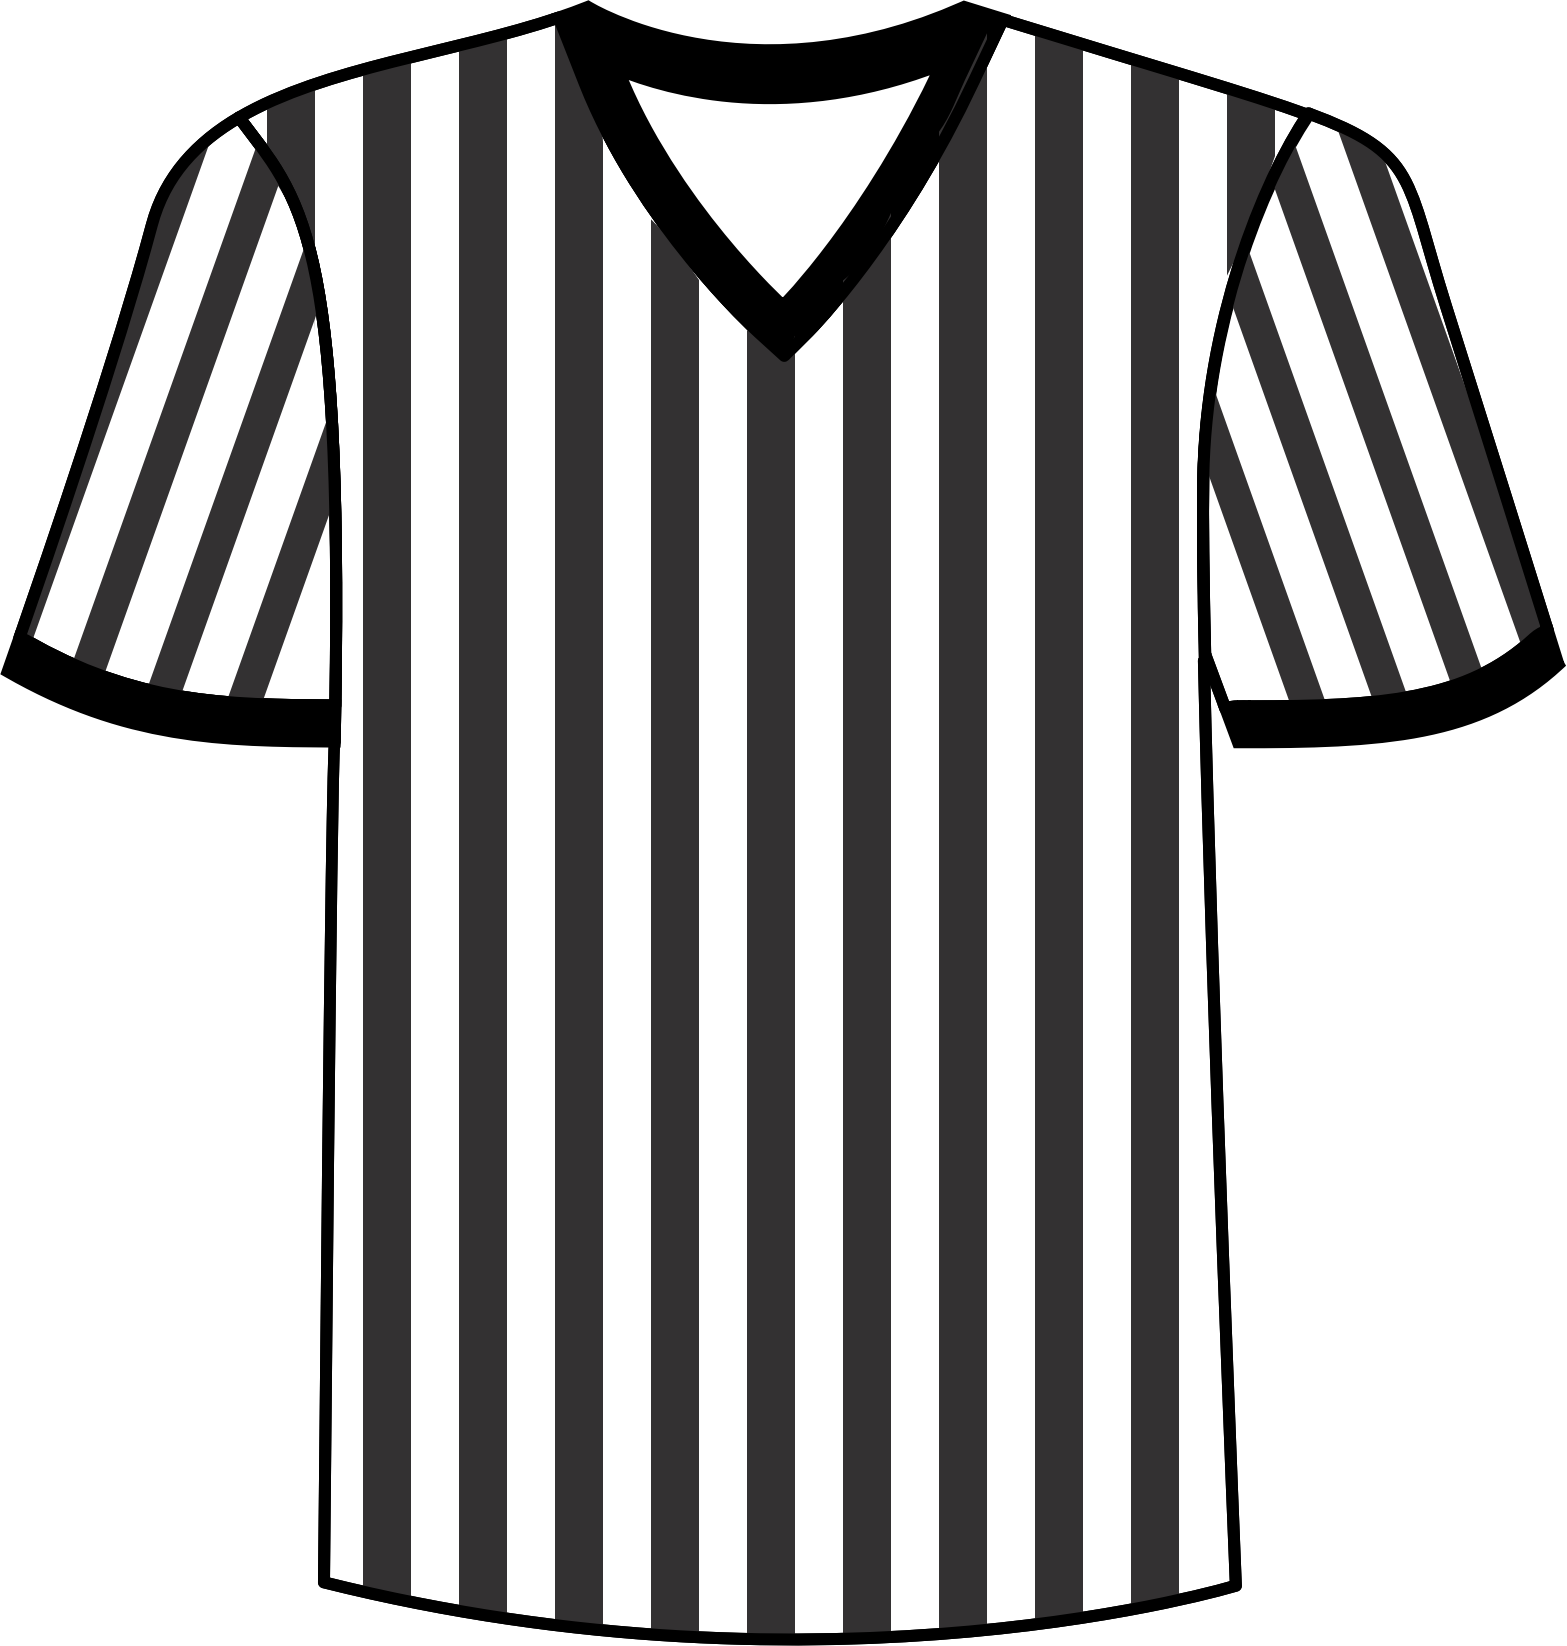 Football Shirt Clipart Football Referee Shirt